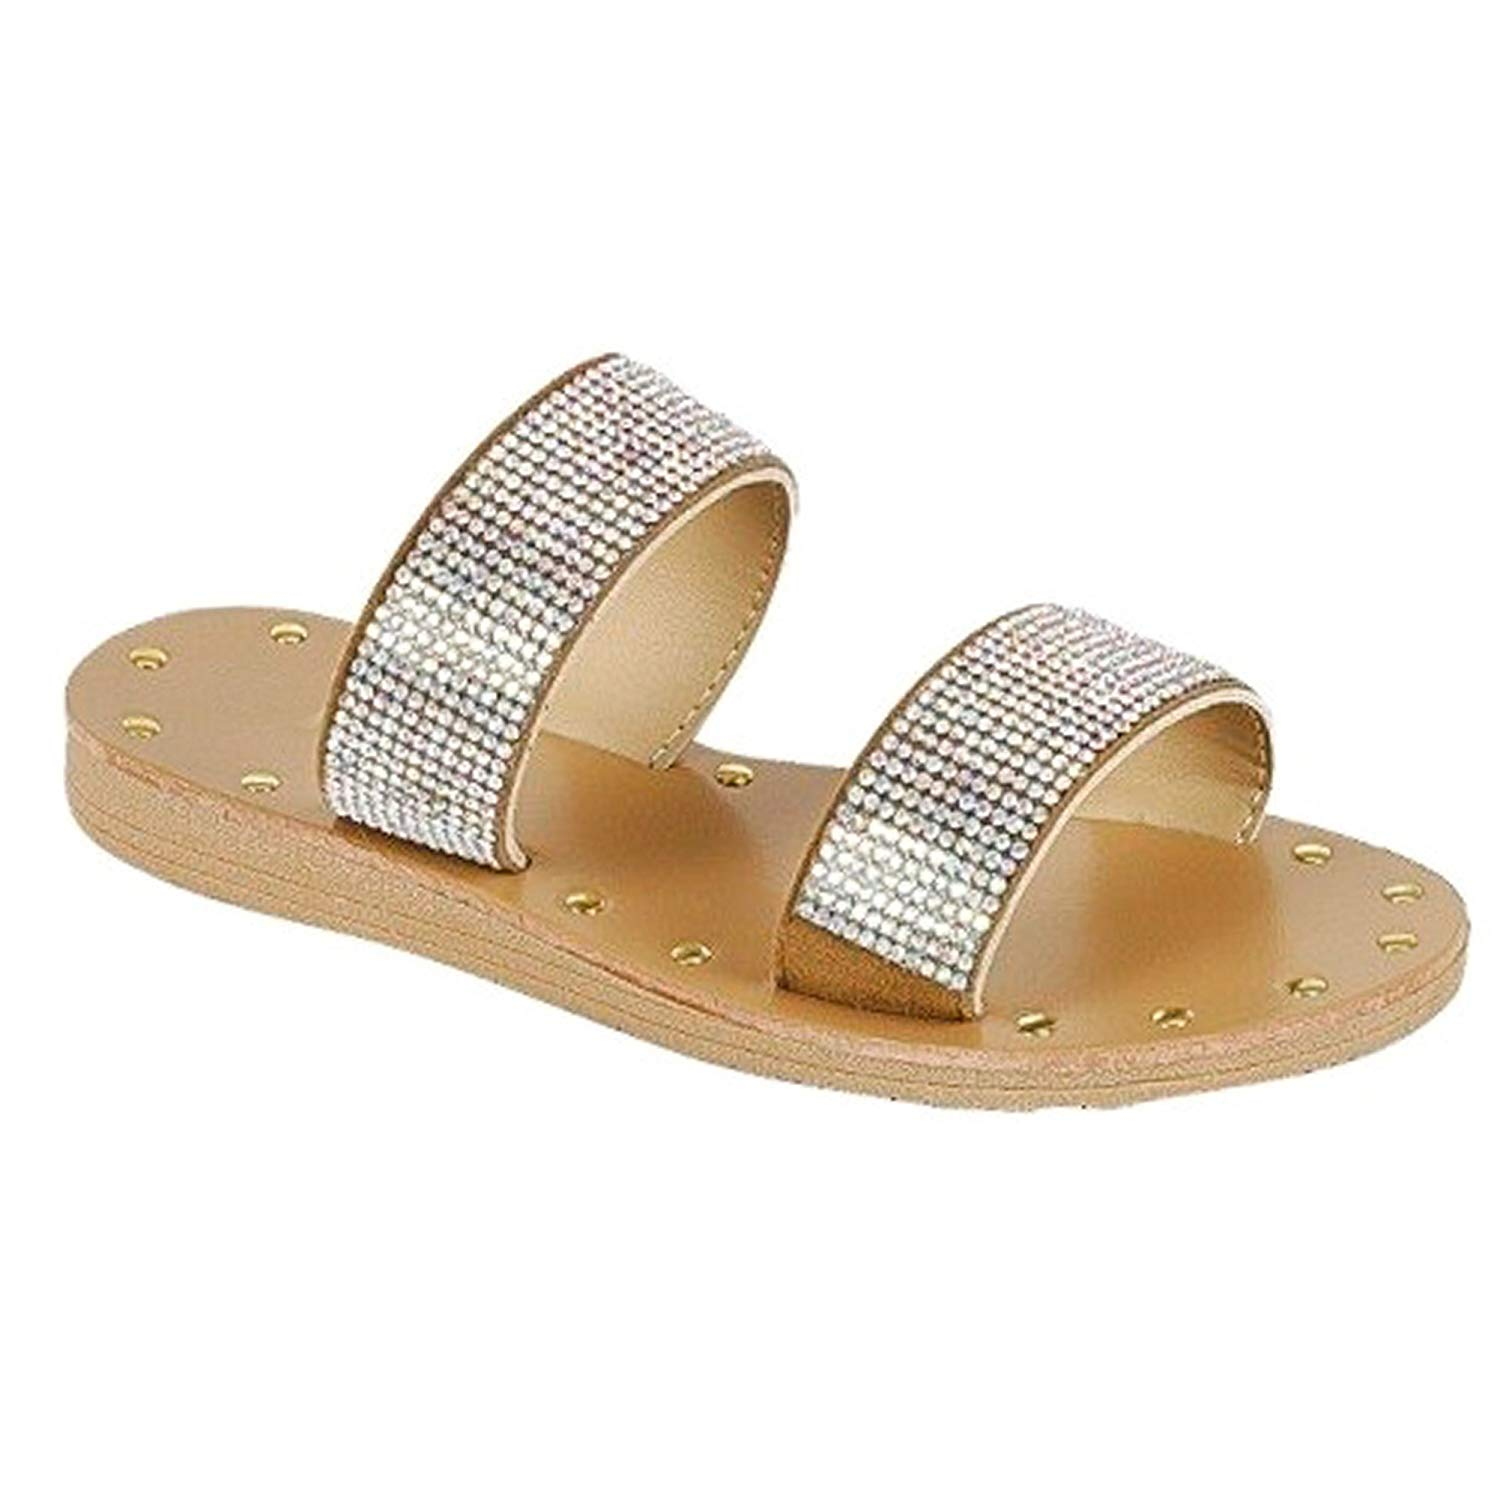 f0f0b53e56dc1 Get Quotations · SNJ Women Casual Slingback   Double 2 Strap Sandal Low Flat  Heel Slip On Slide